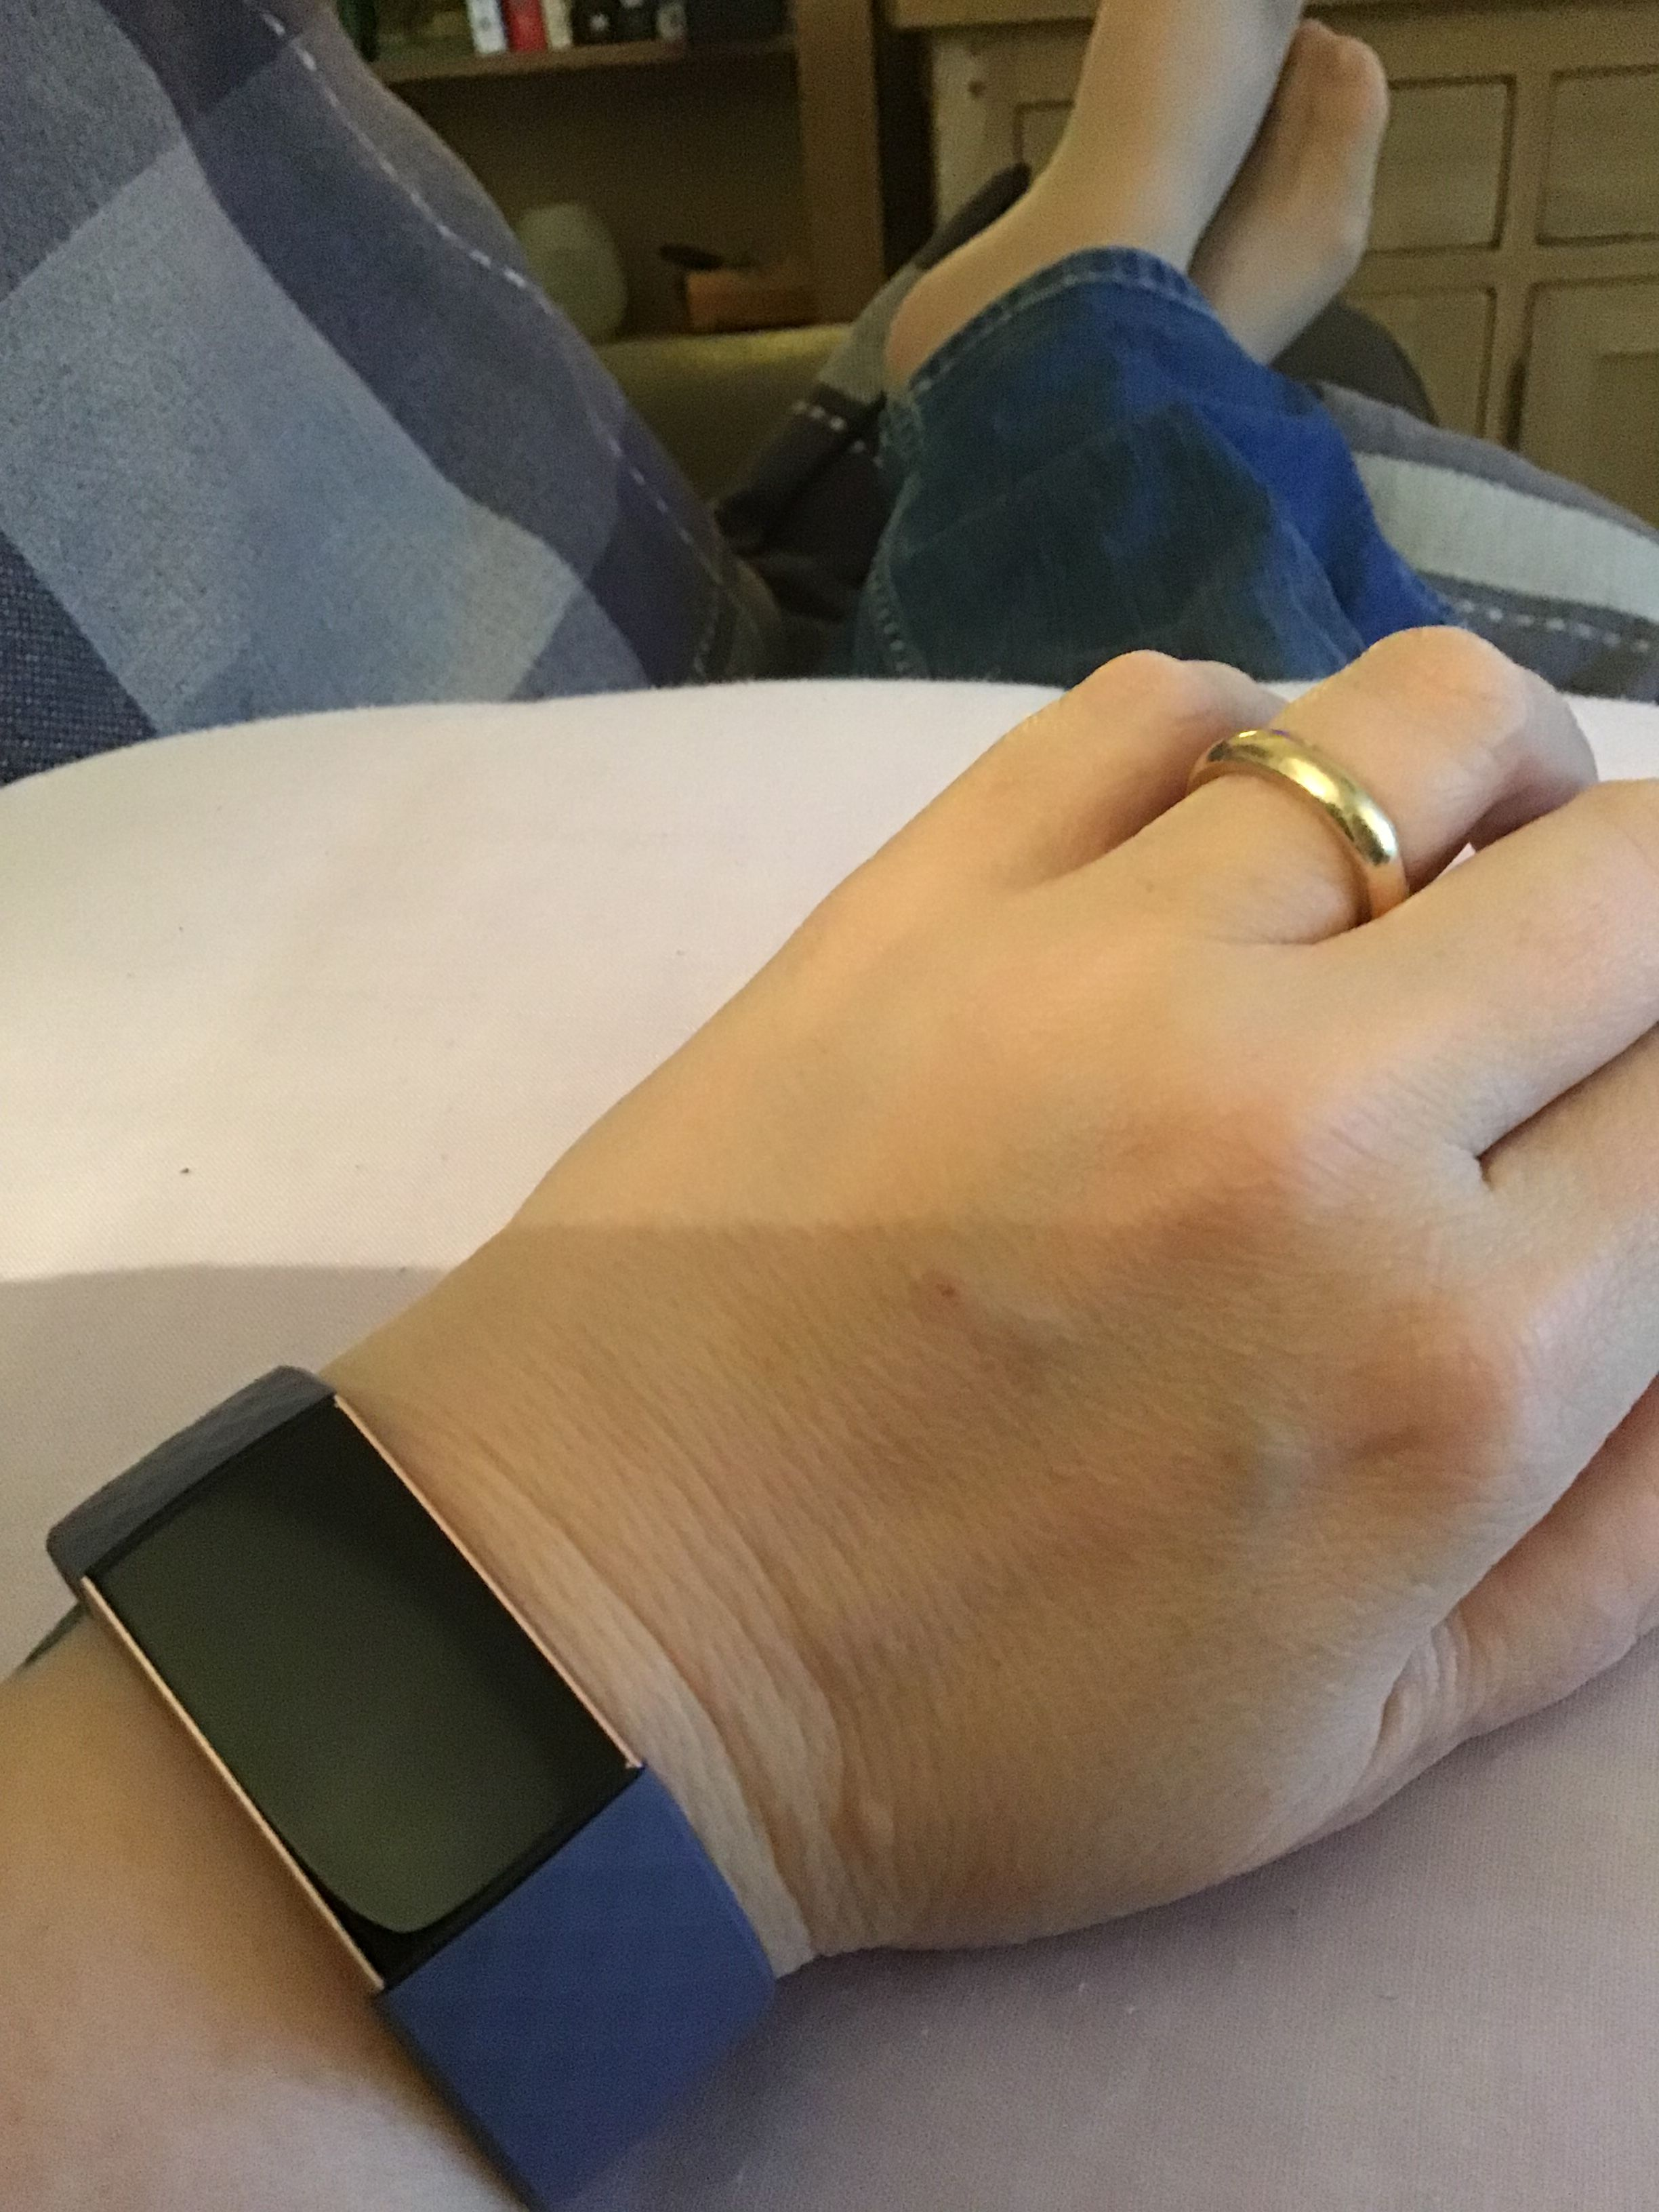 Size of Charge 3 on skinny wrist - Fitbit Community